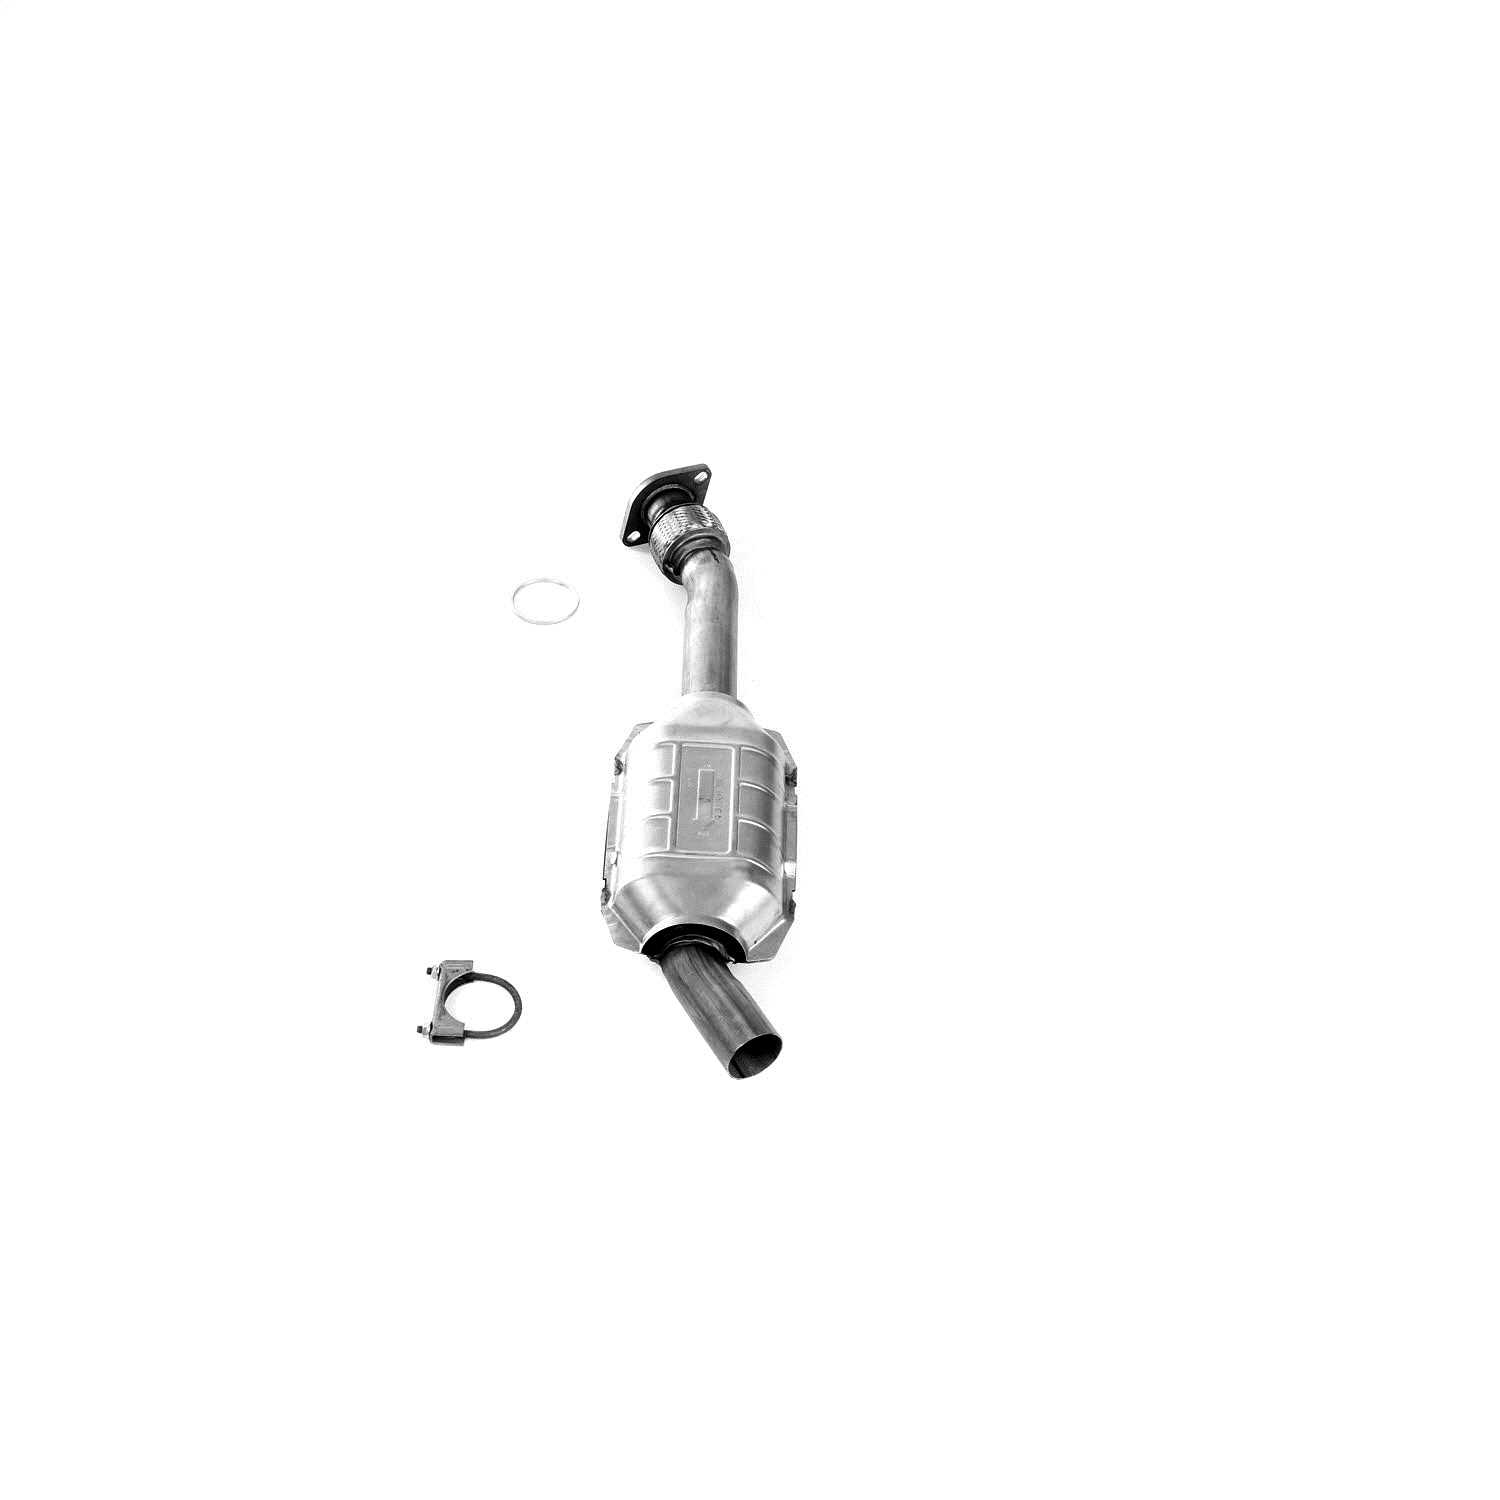 2024185 Flowmaster 49 State Catalytic Converters Direct Fit Catalytic Converter